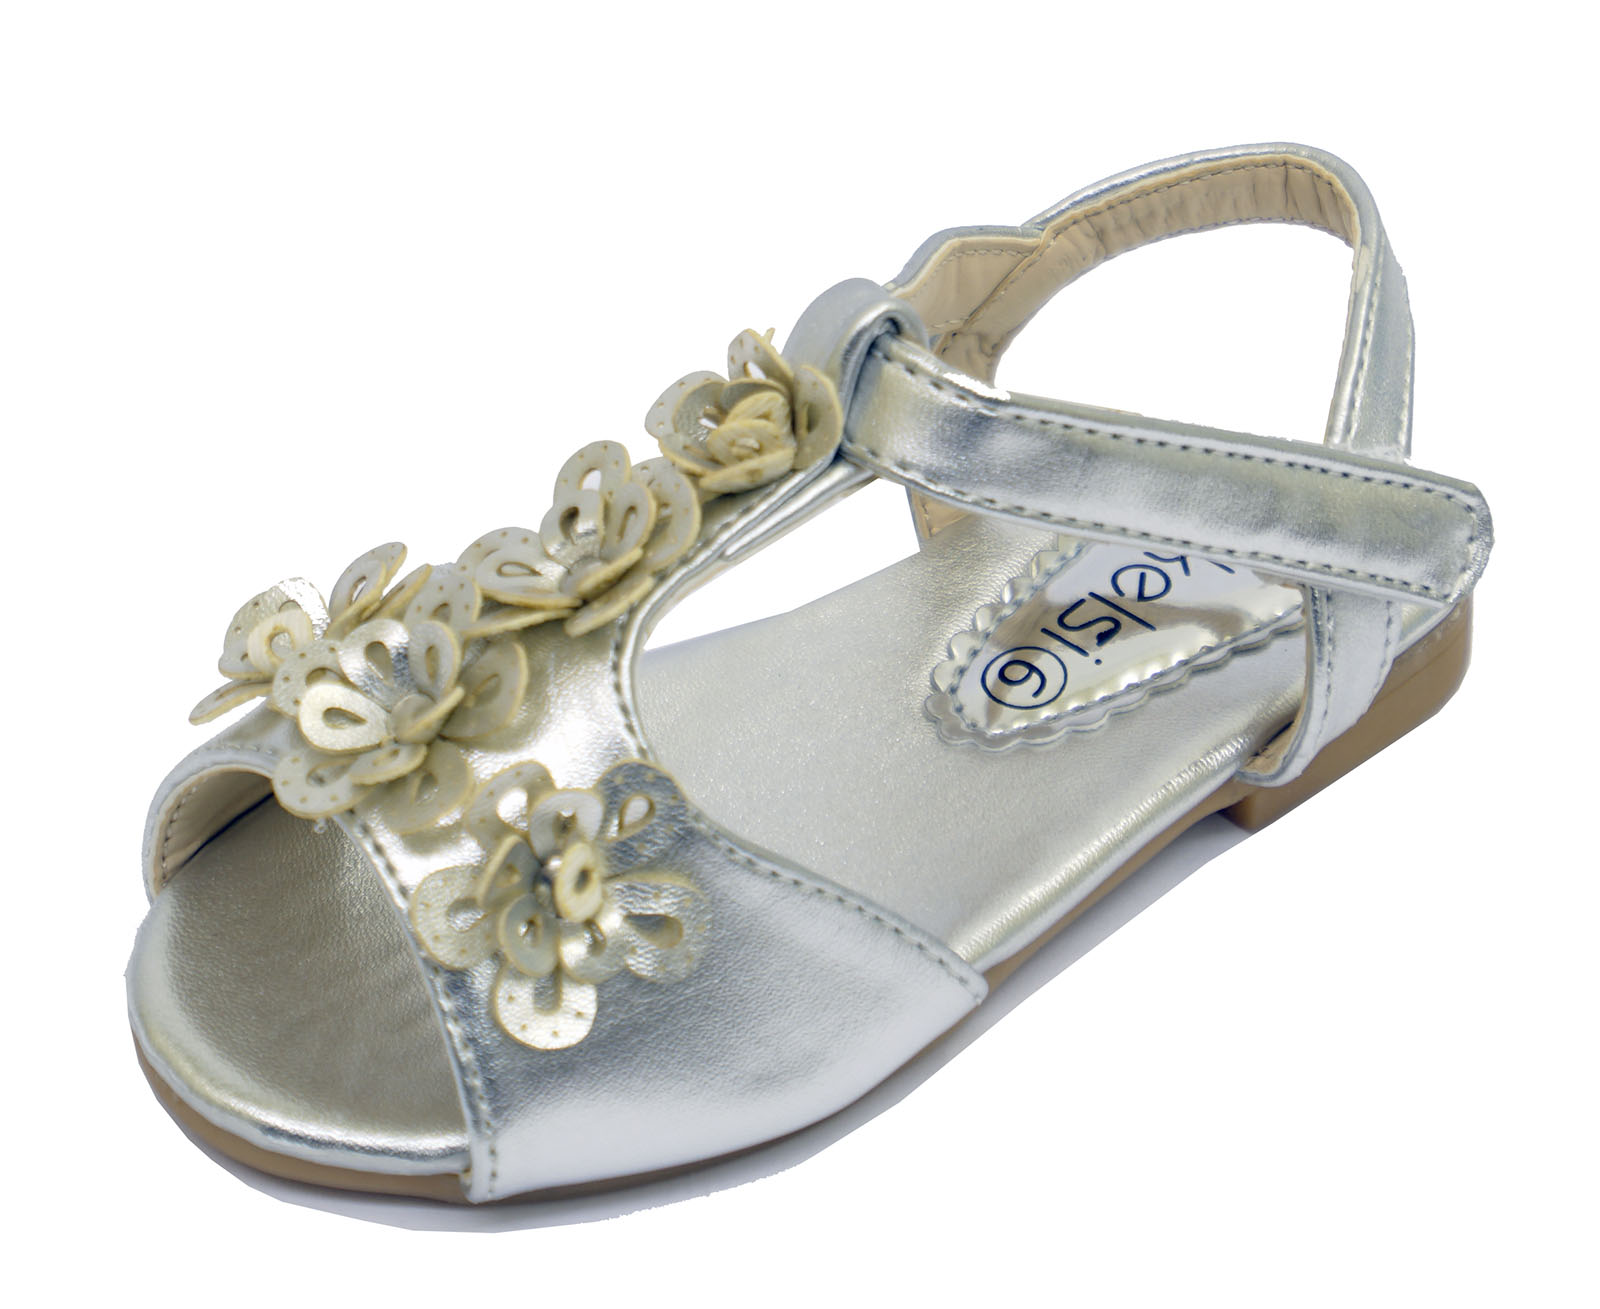 LITTLE GIRLS CHILDRENS SILVER FLOWER WEDDING SANDALS T-BAR INFANT KIDS SHOES 3-7